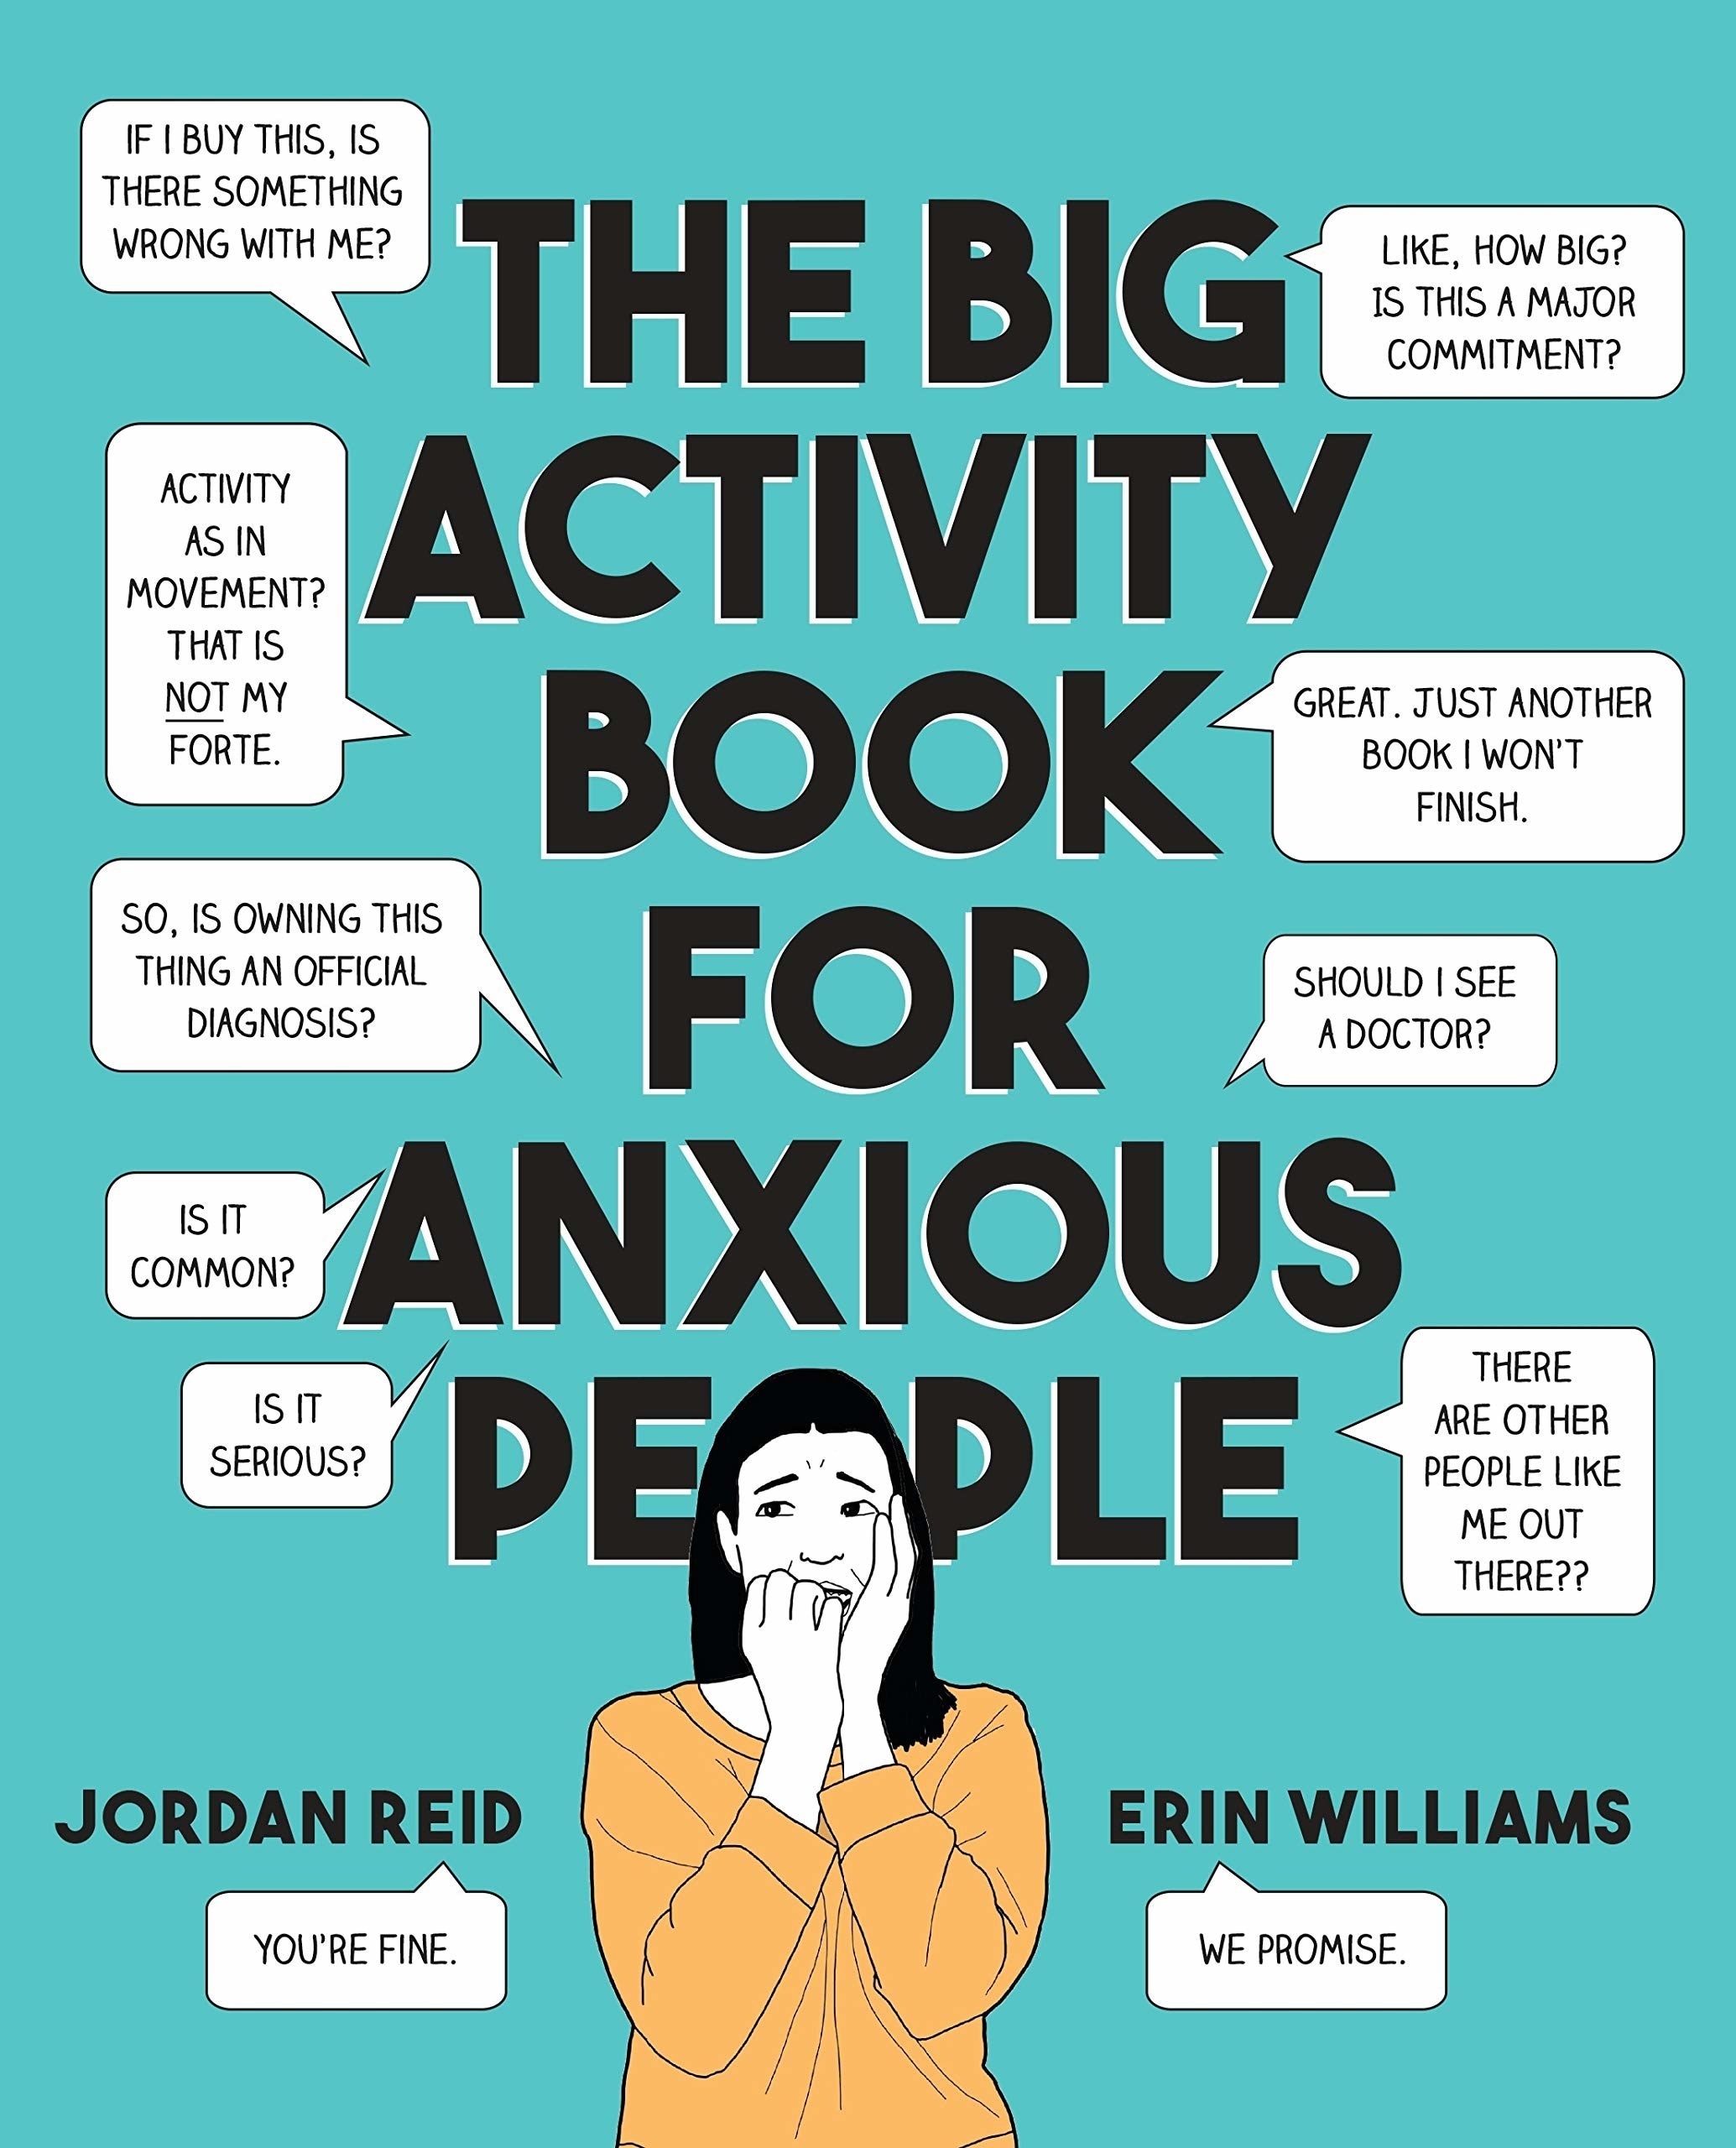 The cover of the book which depicts a woman having anxious thoughts through word bubbles